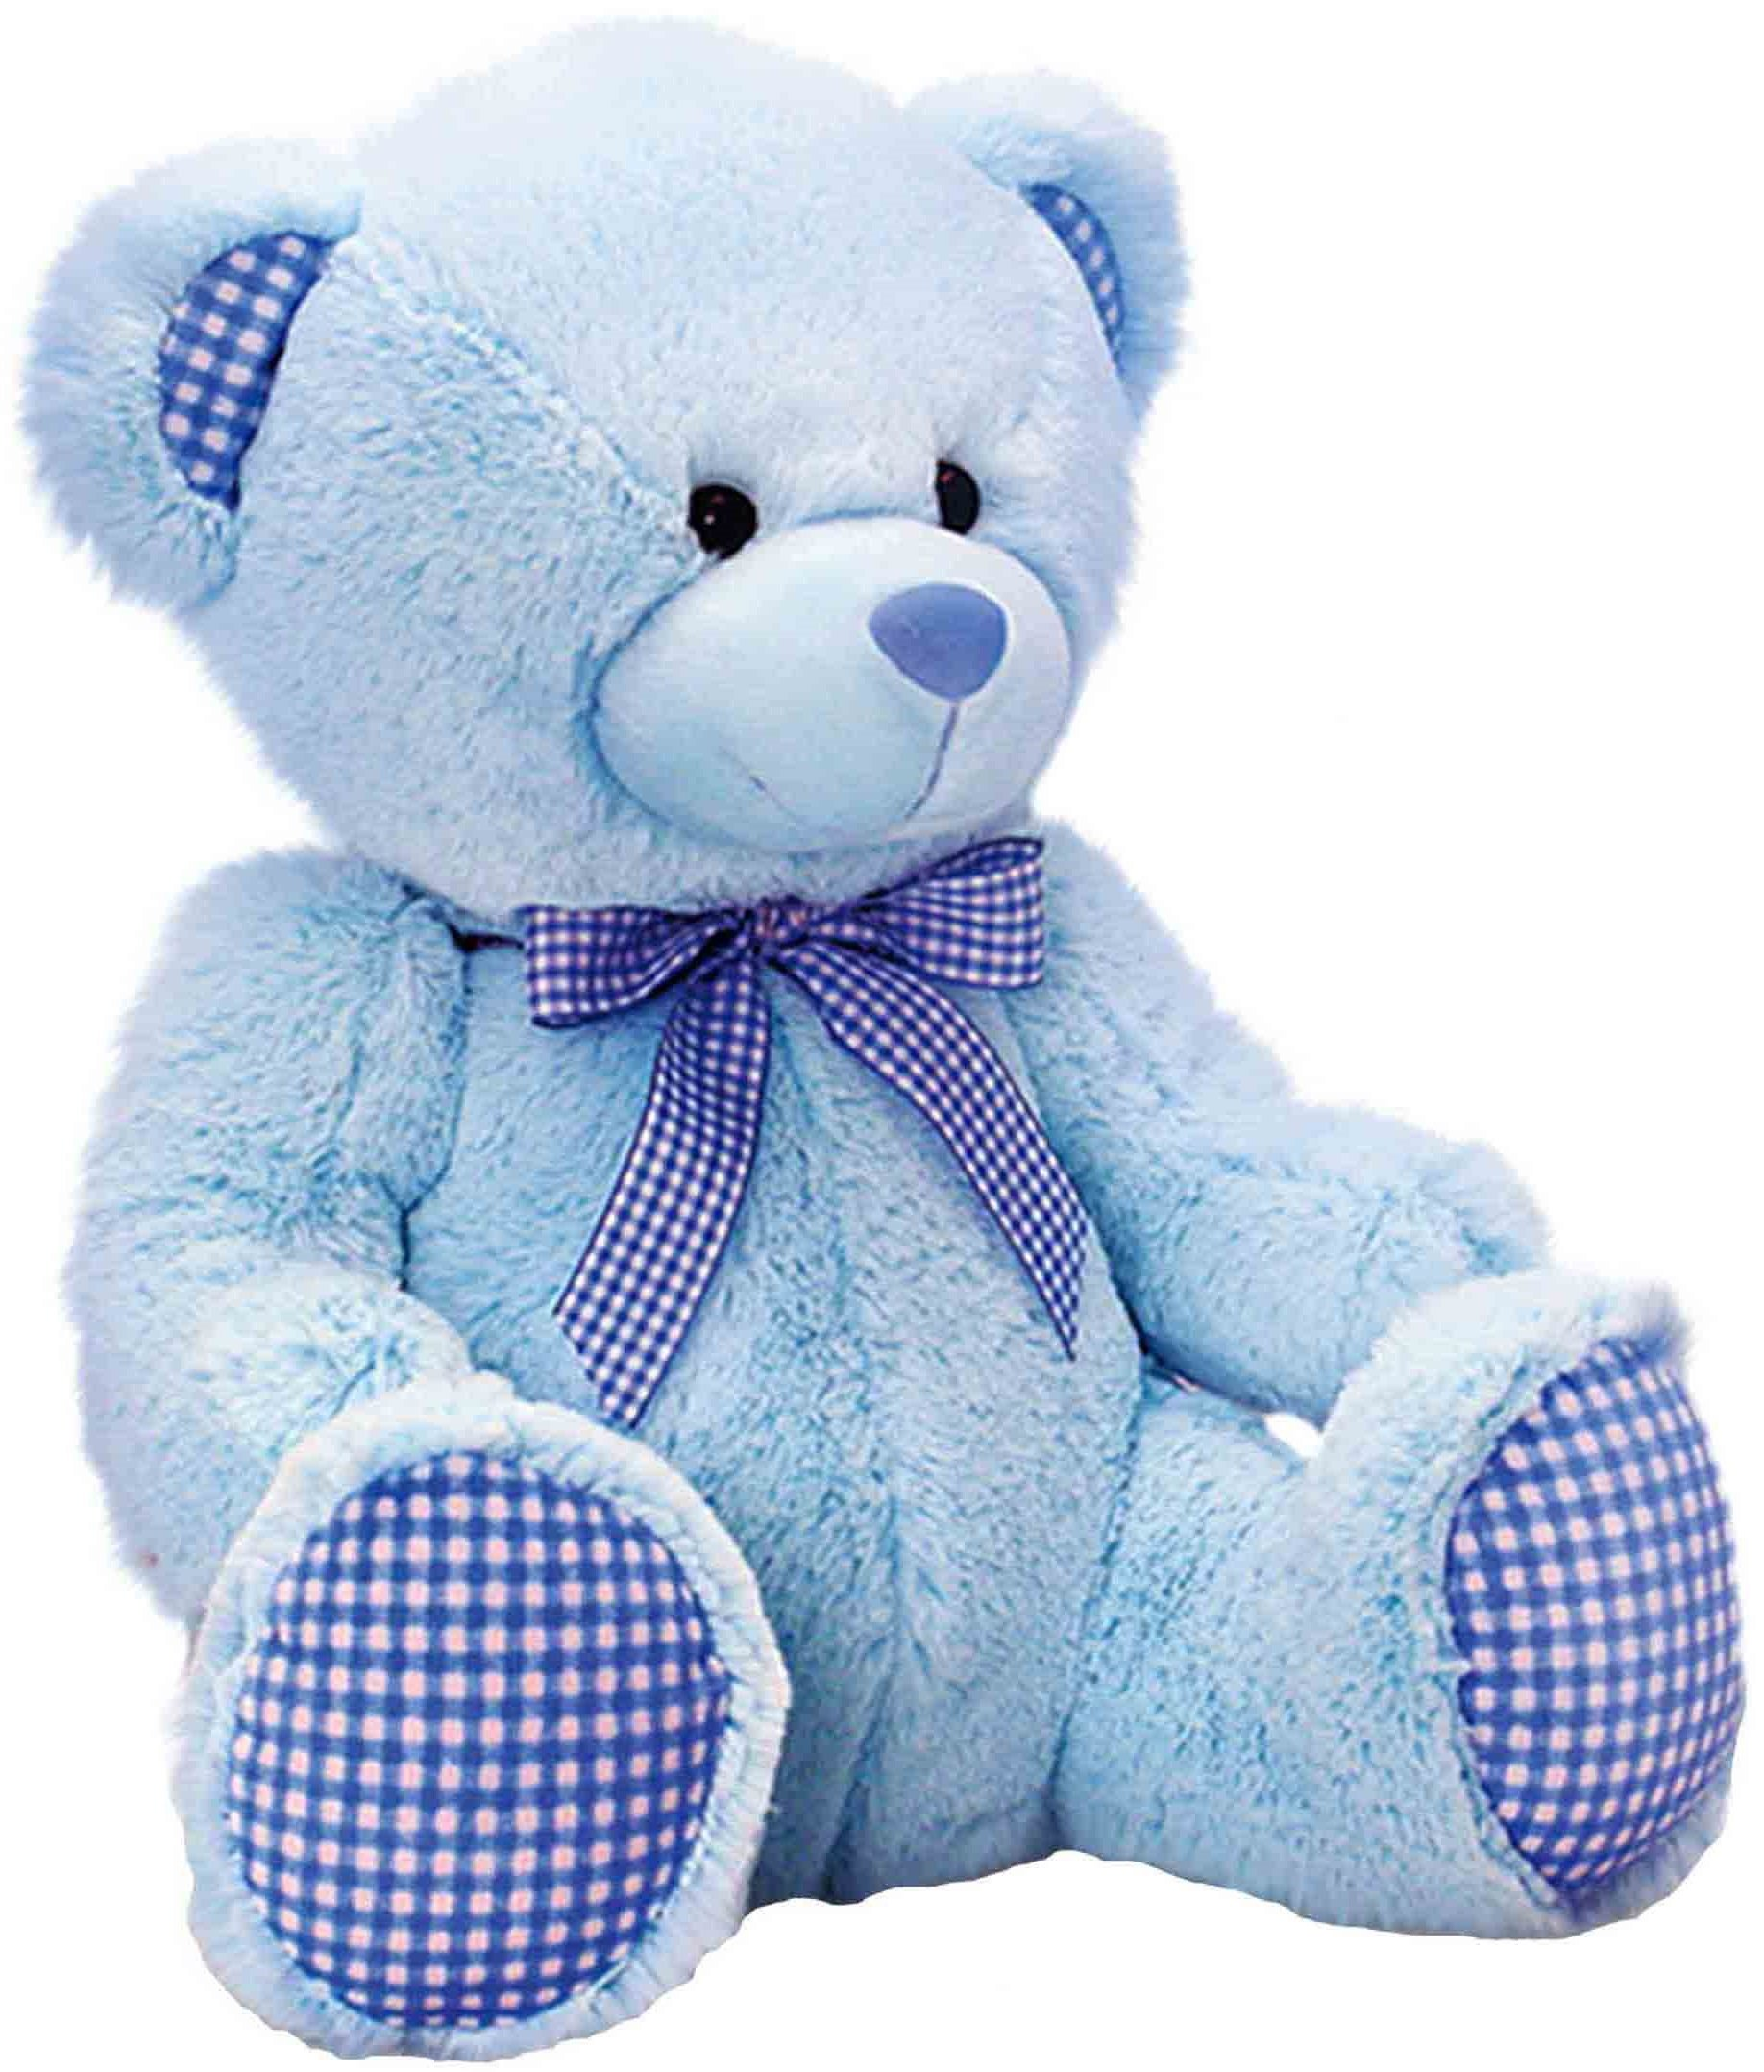 Keel Baby peluche animale grande orsacchiotto blu, coccole animale